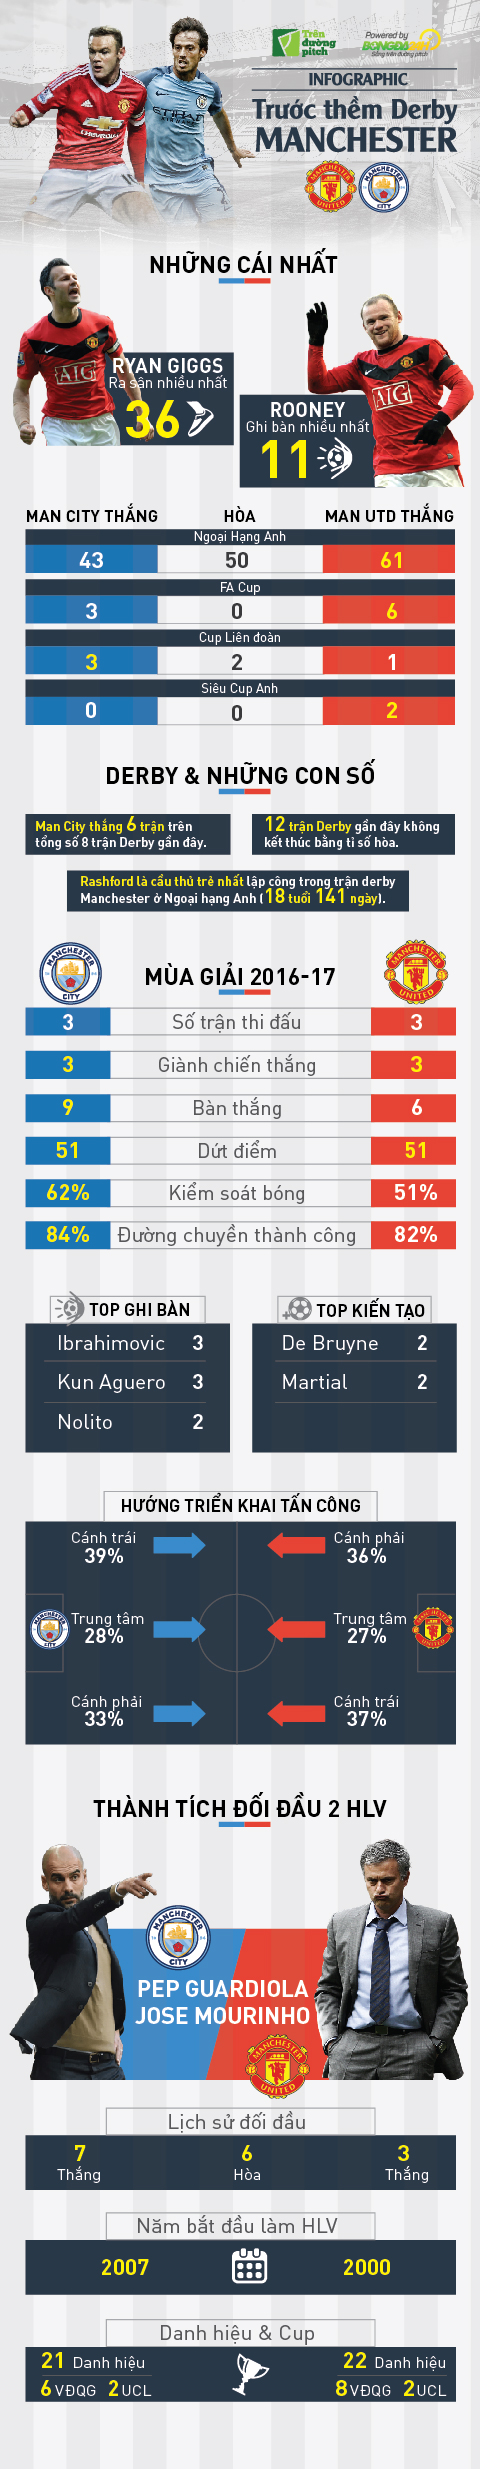 Infographic: Truoc them dai chien thanh Manchester3